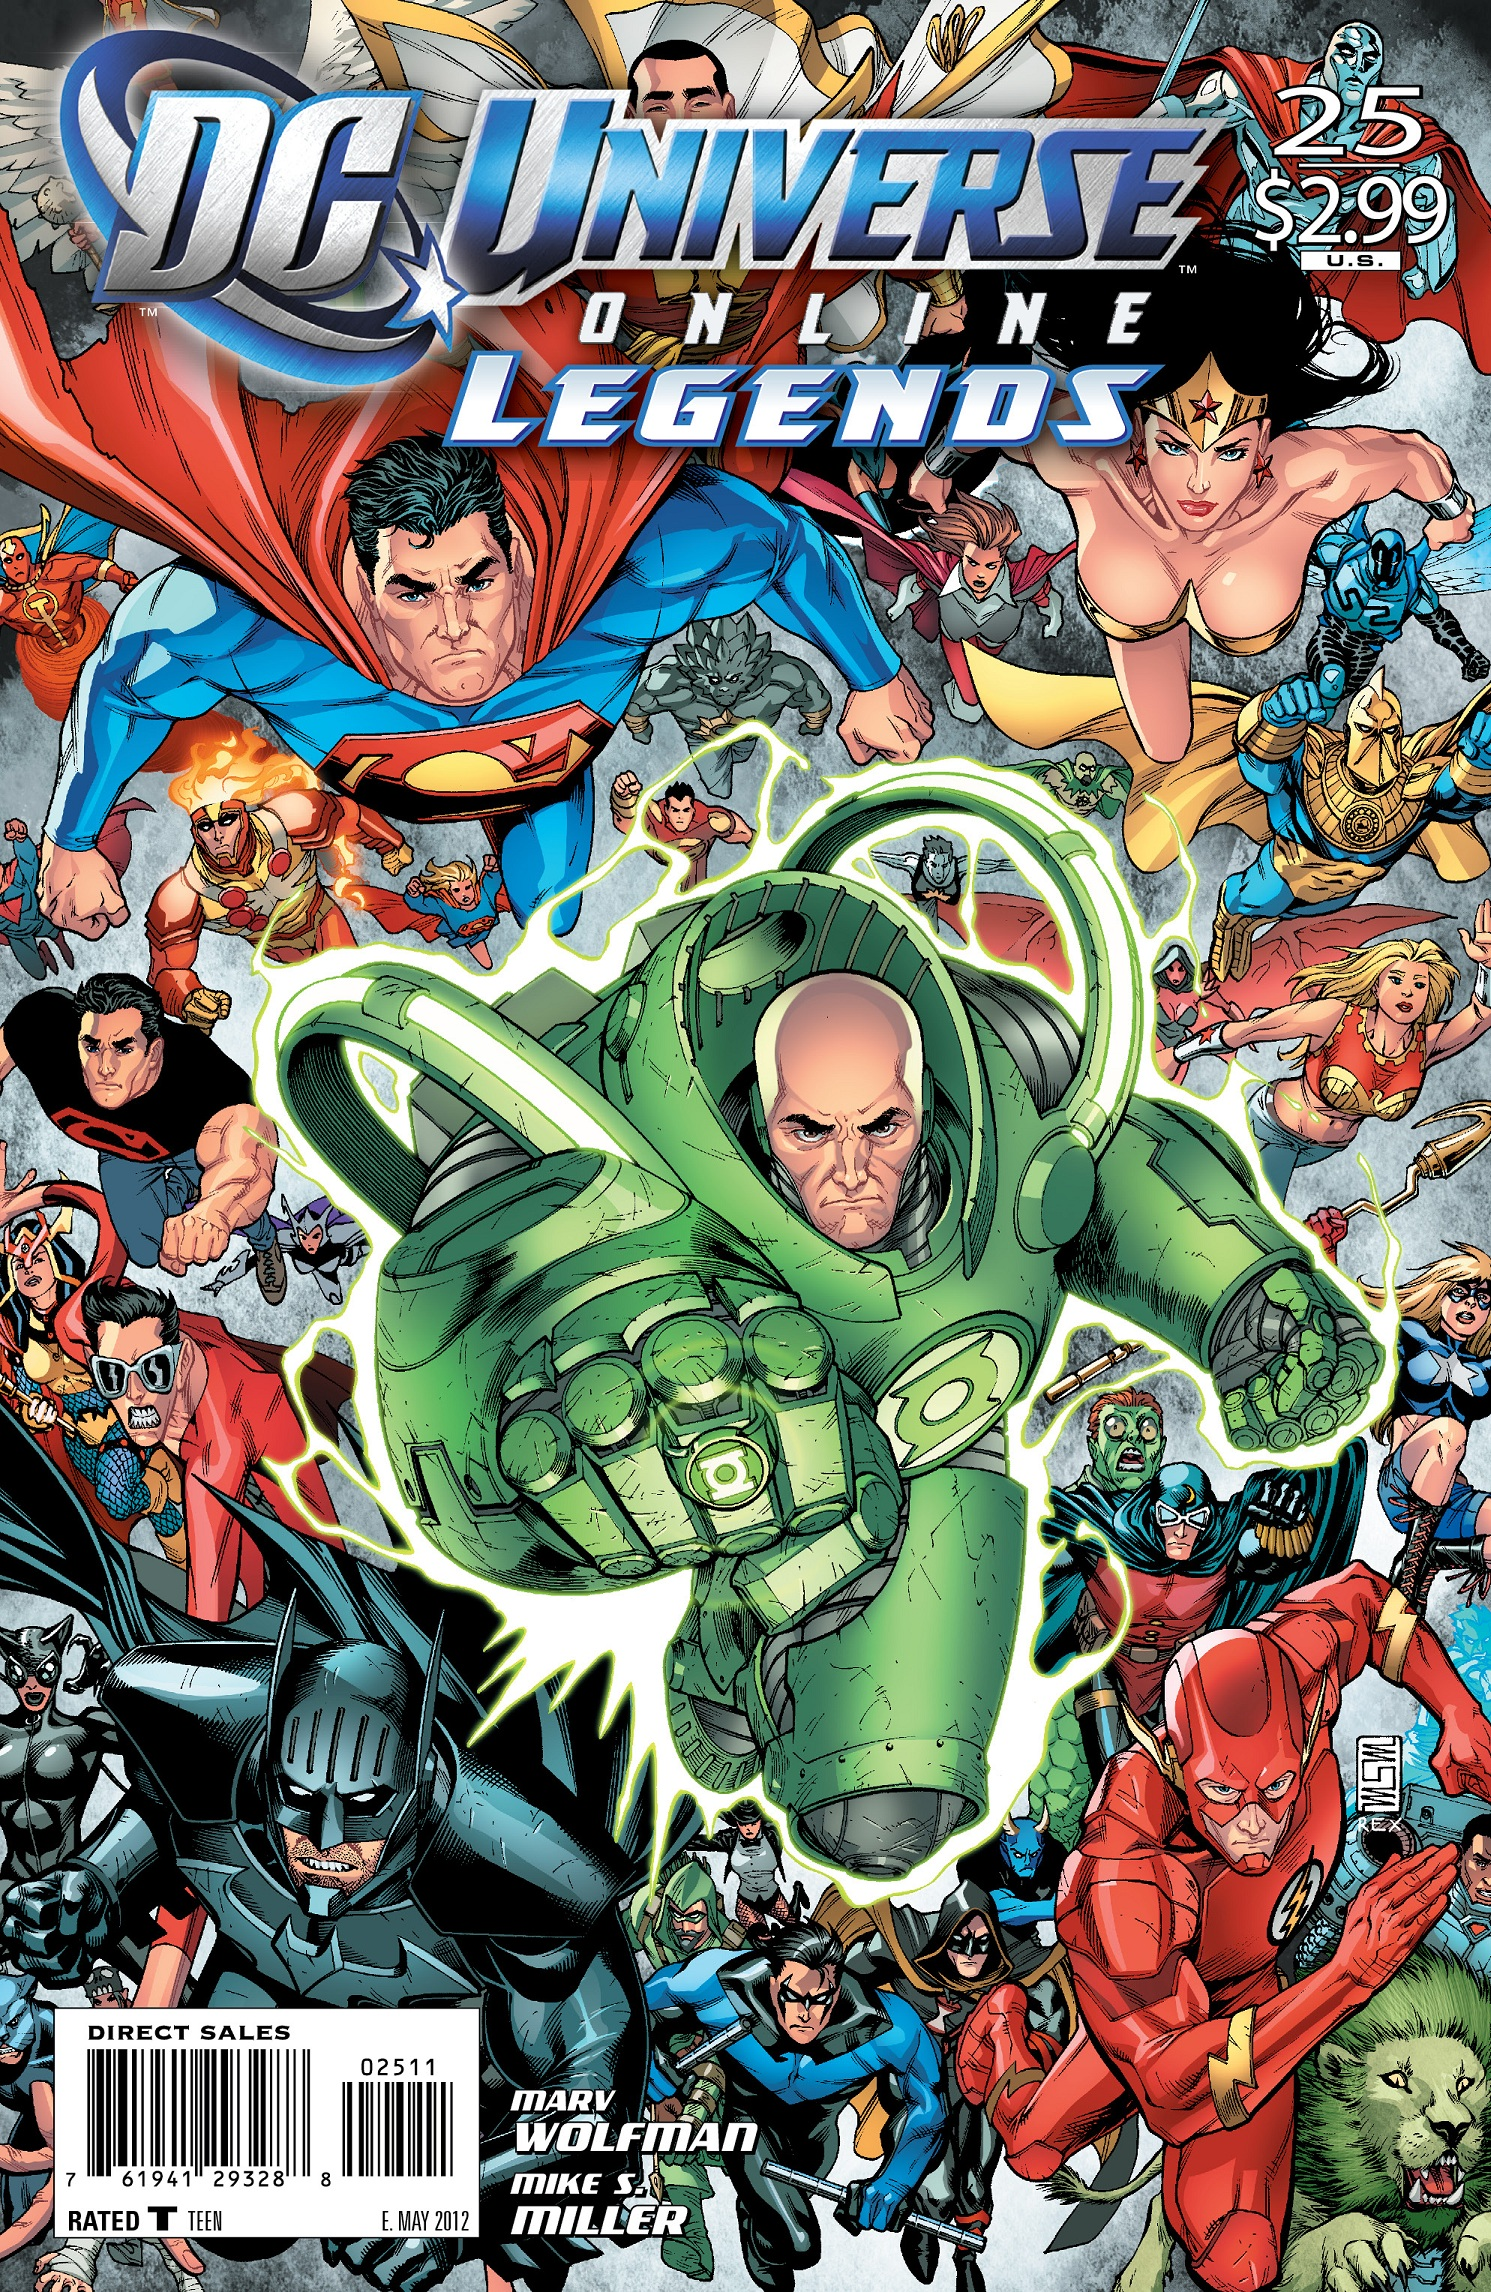 Amazon.com: DC Universe Online Legends Vol. 1 ...